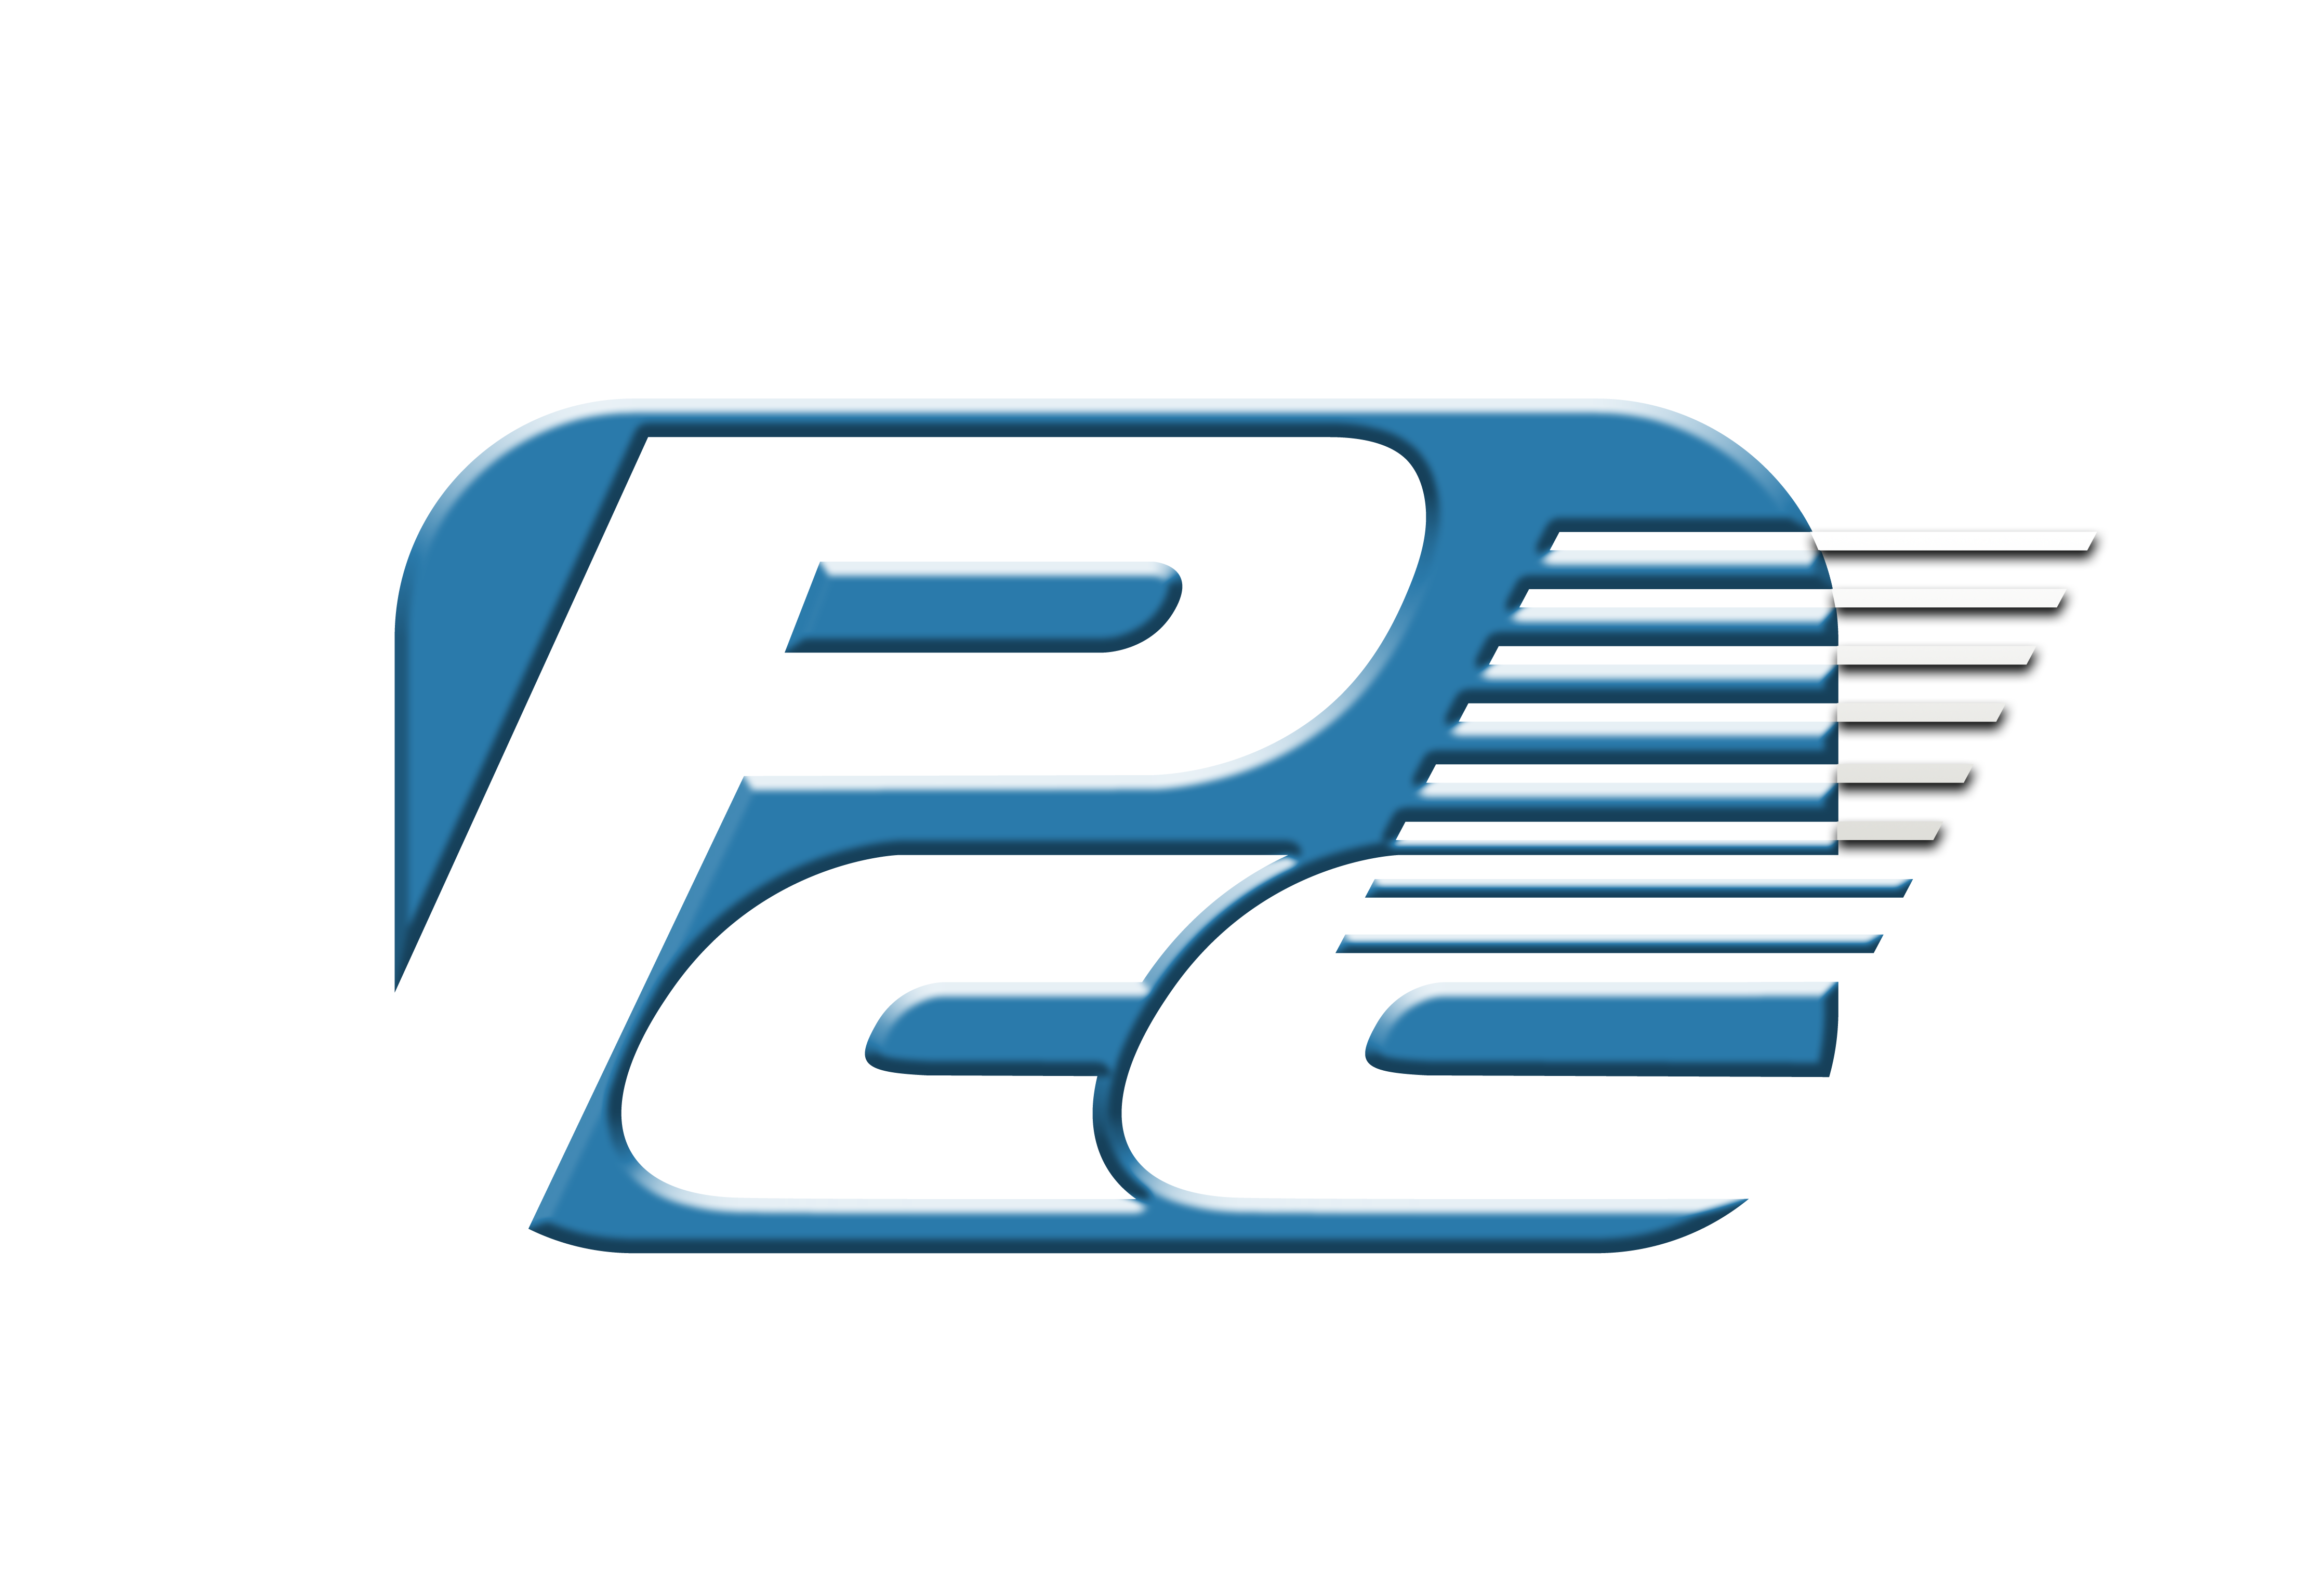 PC Components Logo